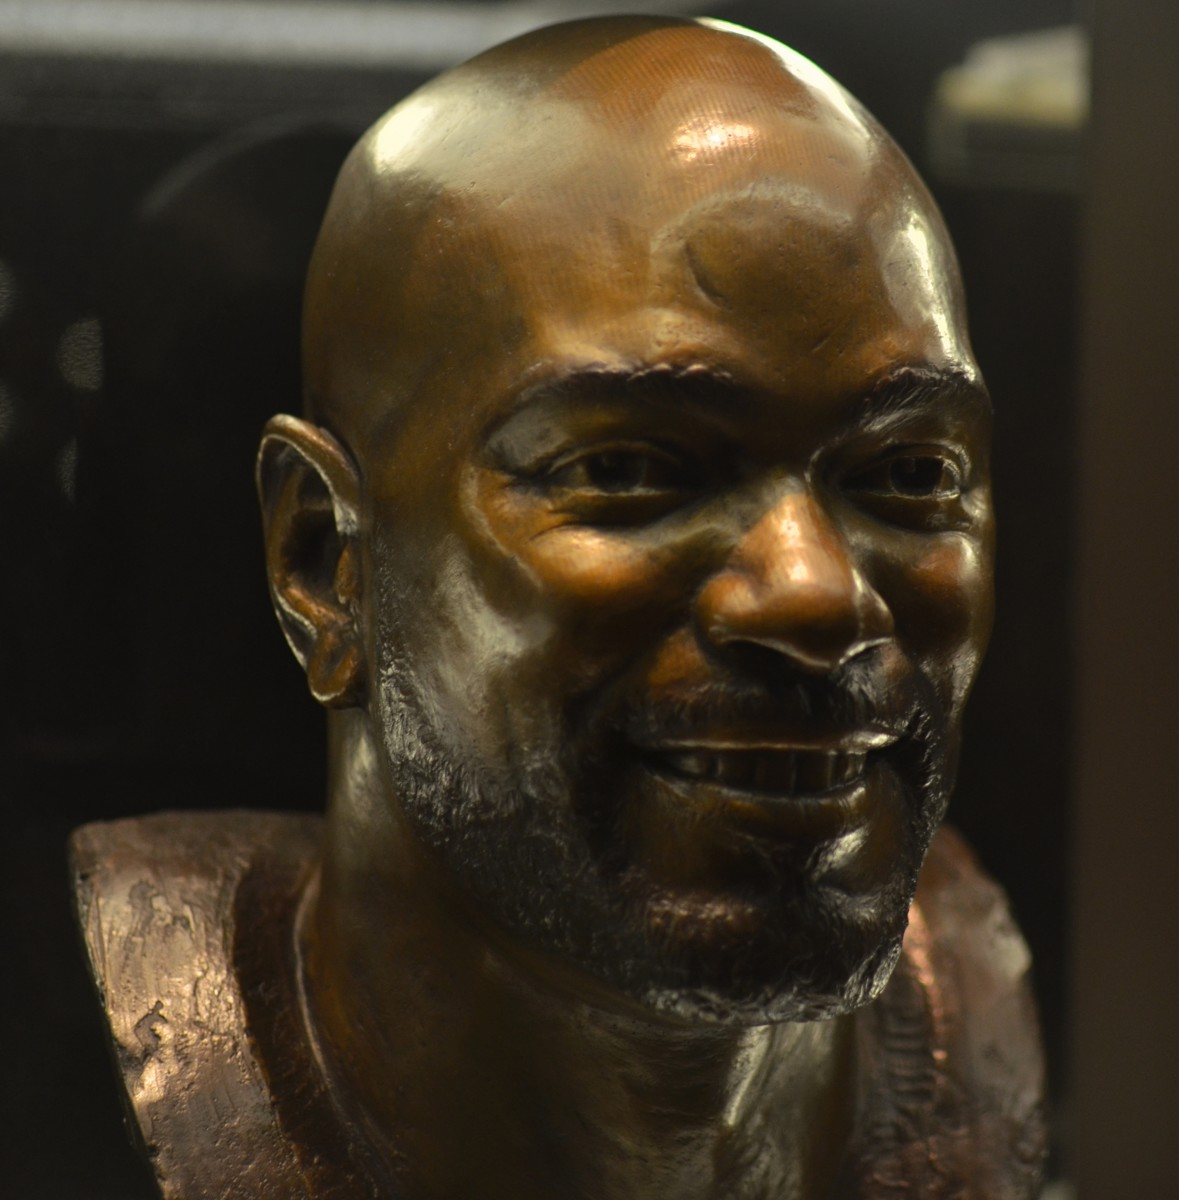 Emmitt Smith's bust as seen in the Pro Football Hall of Fame in Canton, Ohio. Though he played the majority of career with the Dallas Cowboys, he closed out his playing days with two seasons for the Arizona Cardinals.